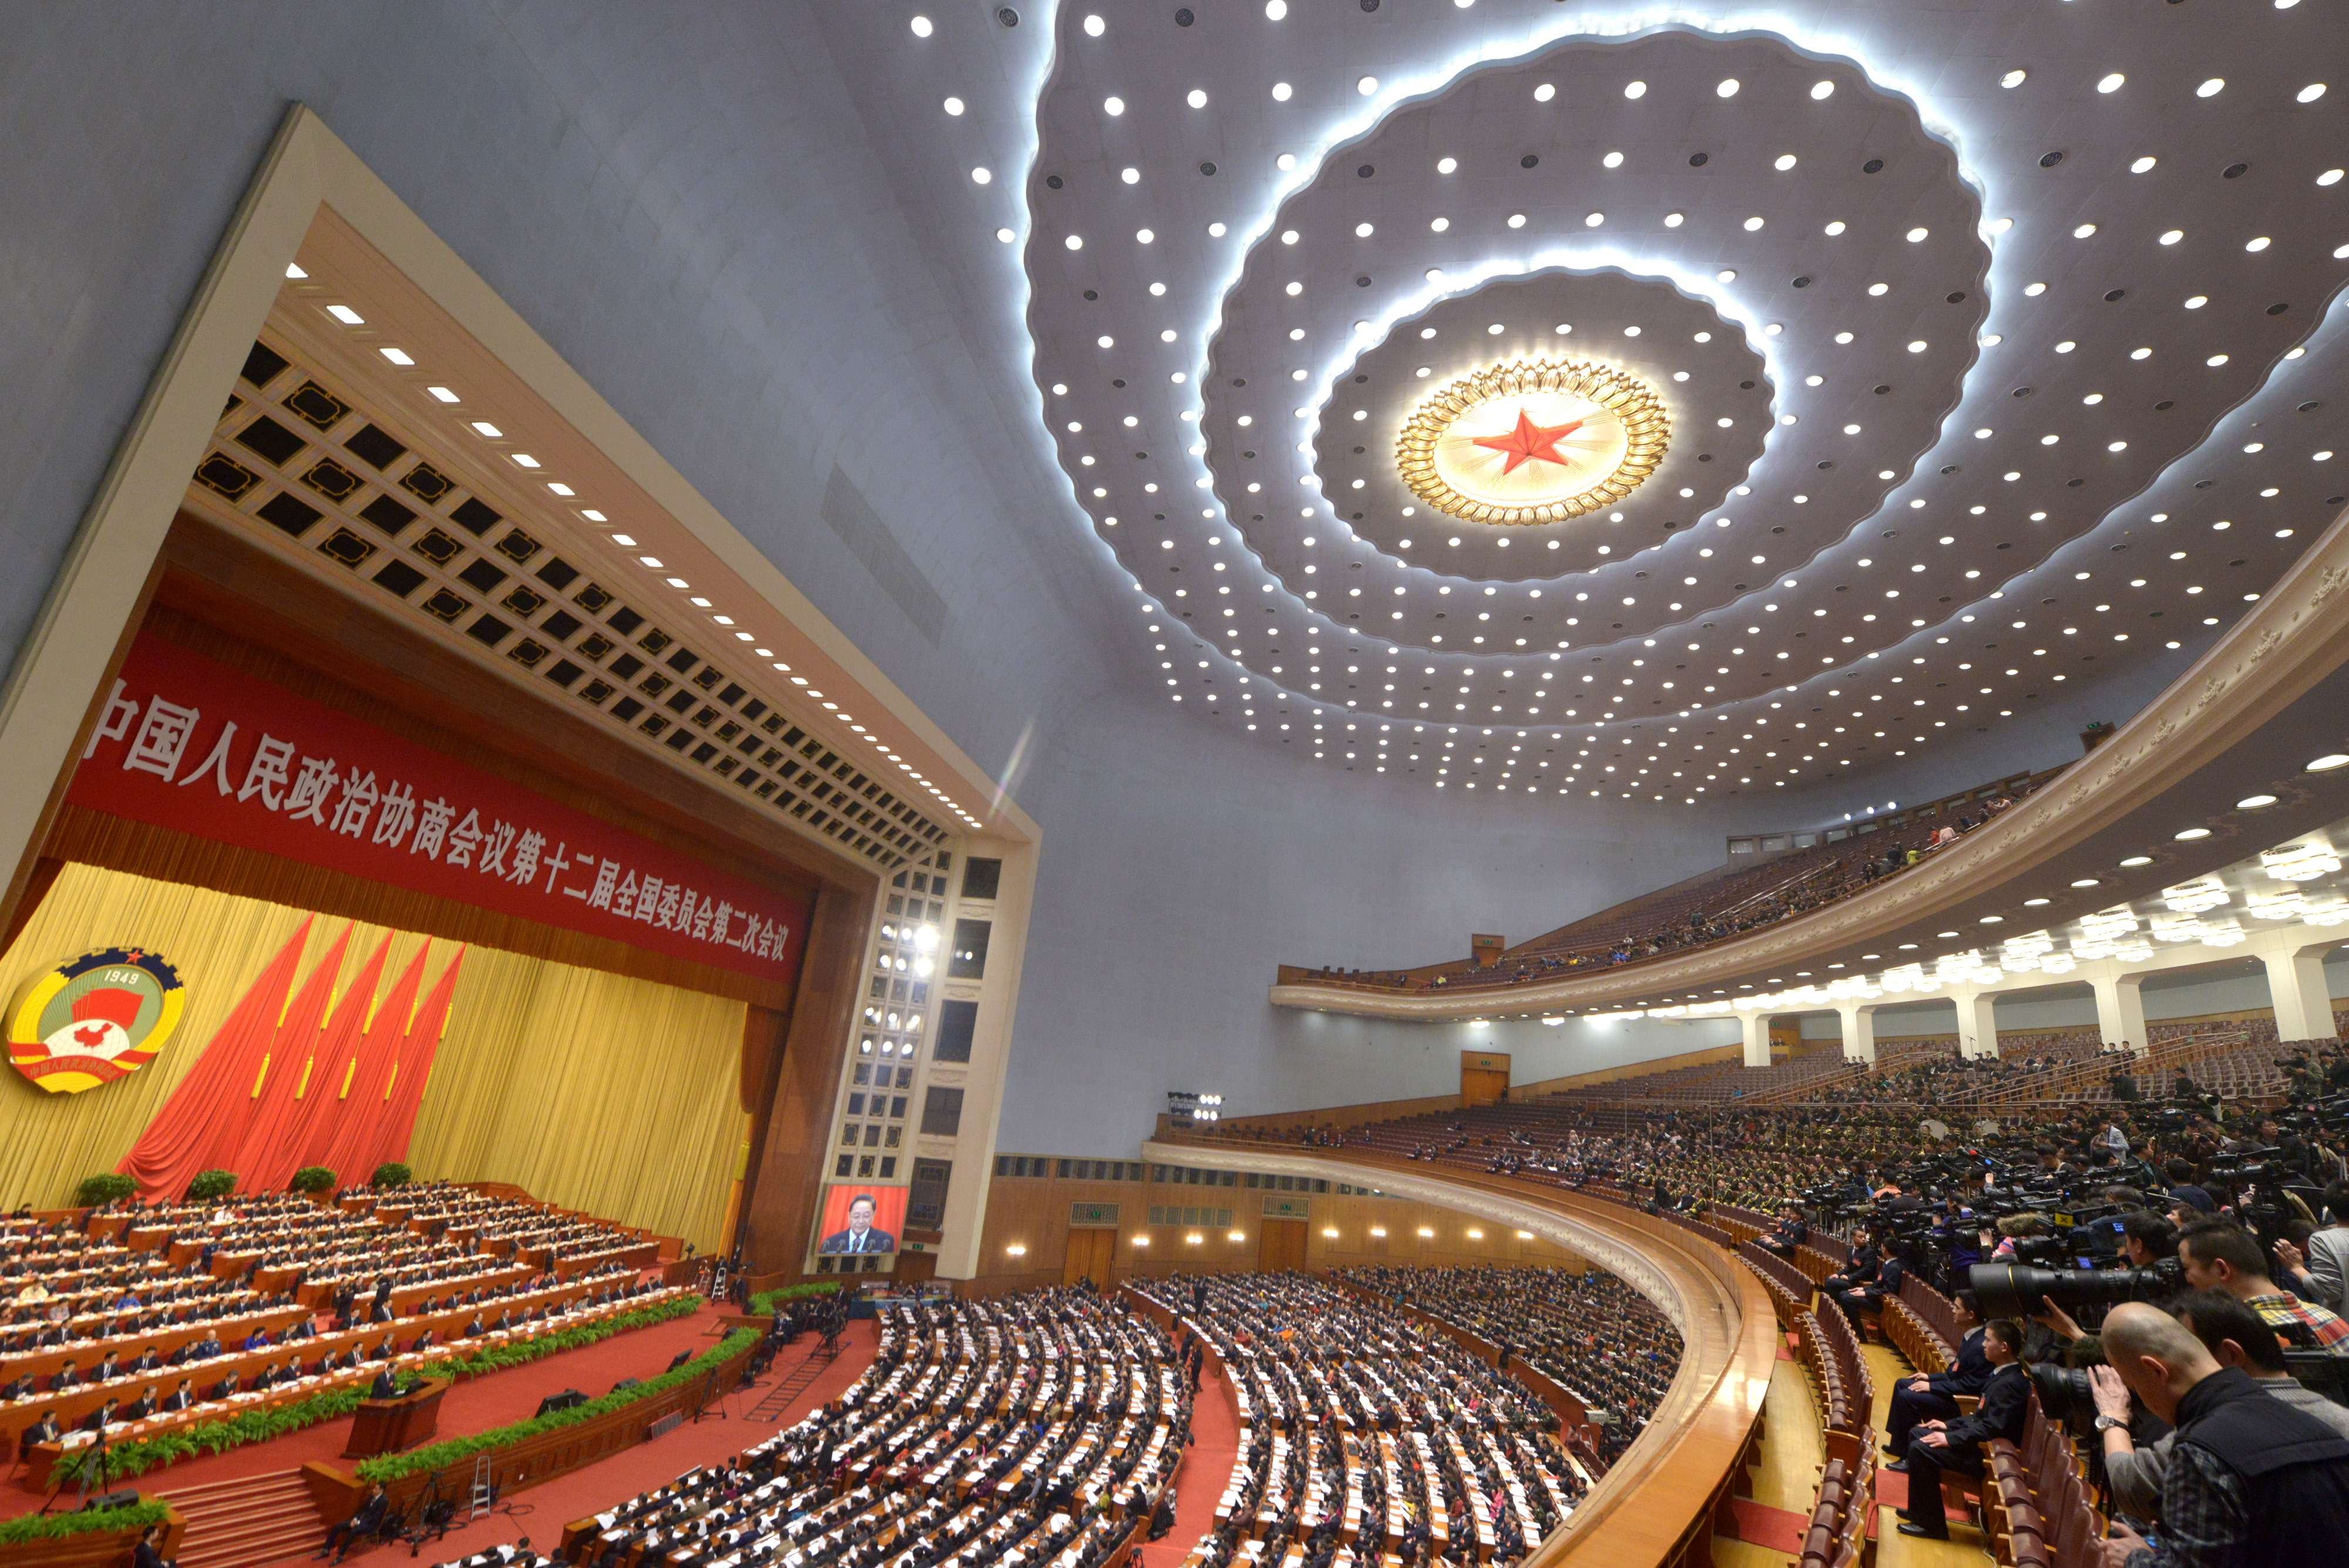 One path to power in China is closed